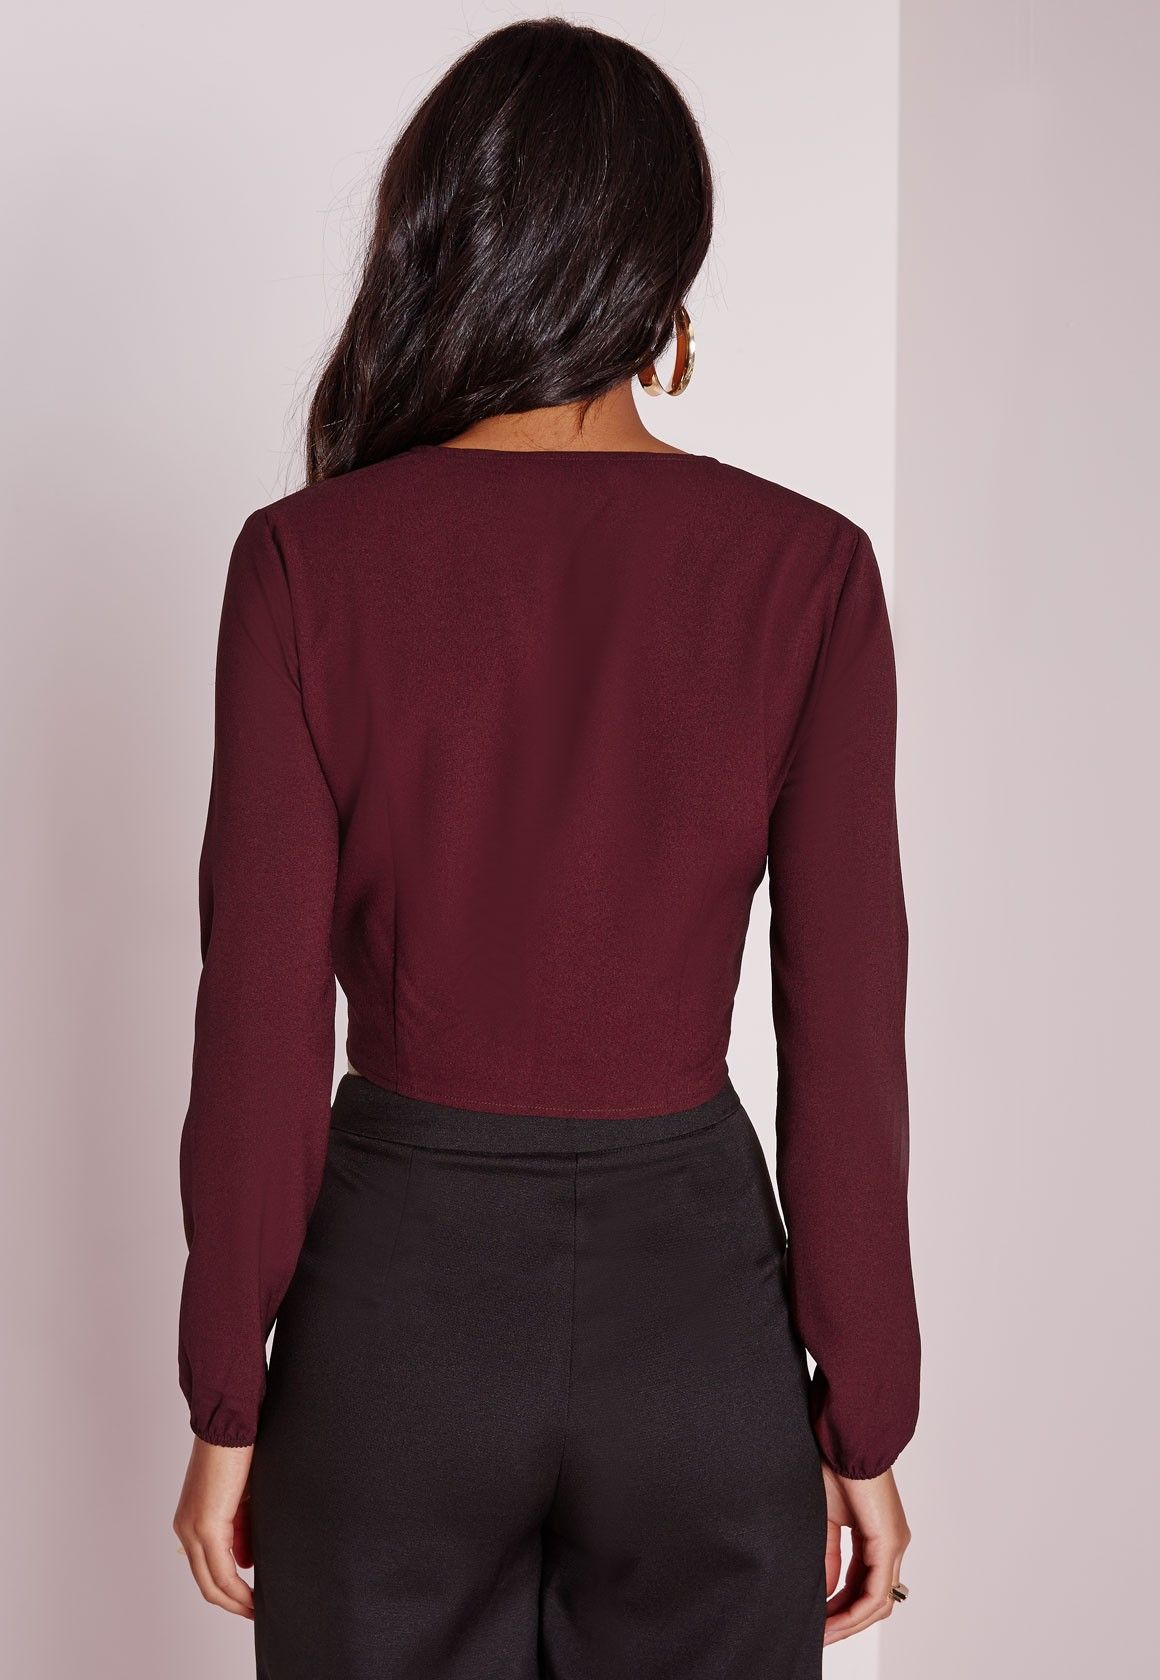 Missguided - Tie Front Cropped Blouse Burgundy